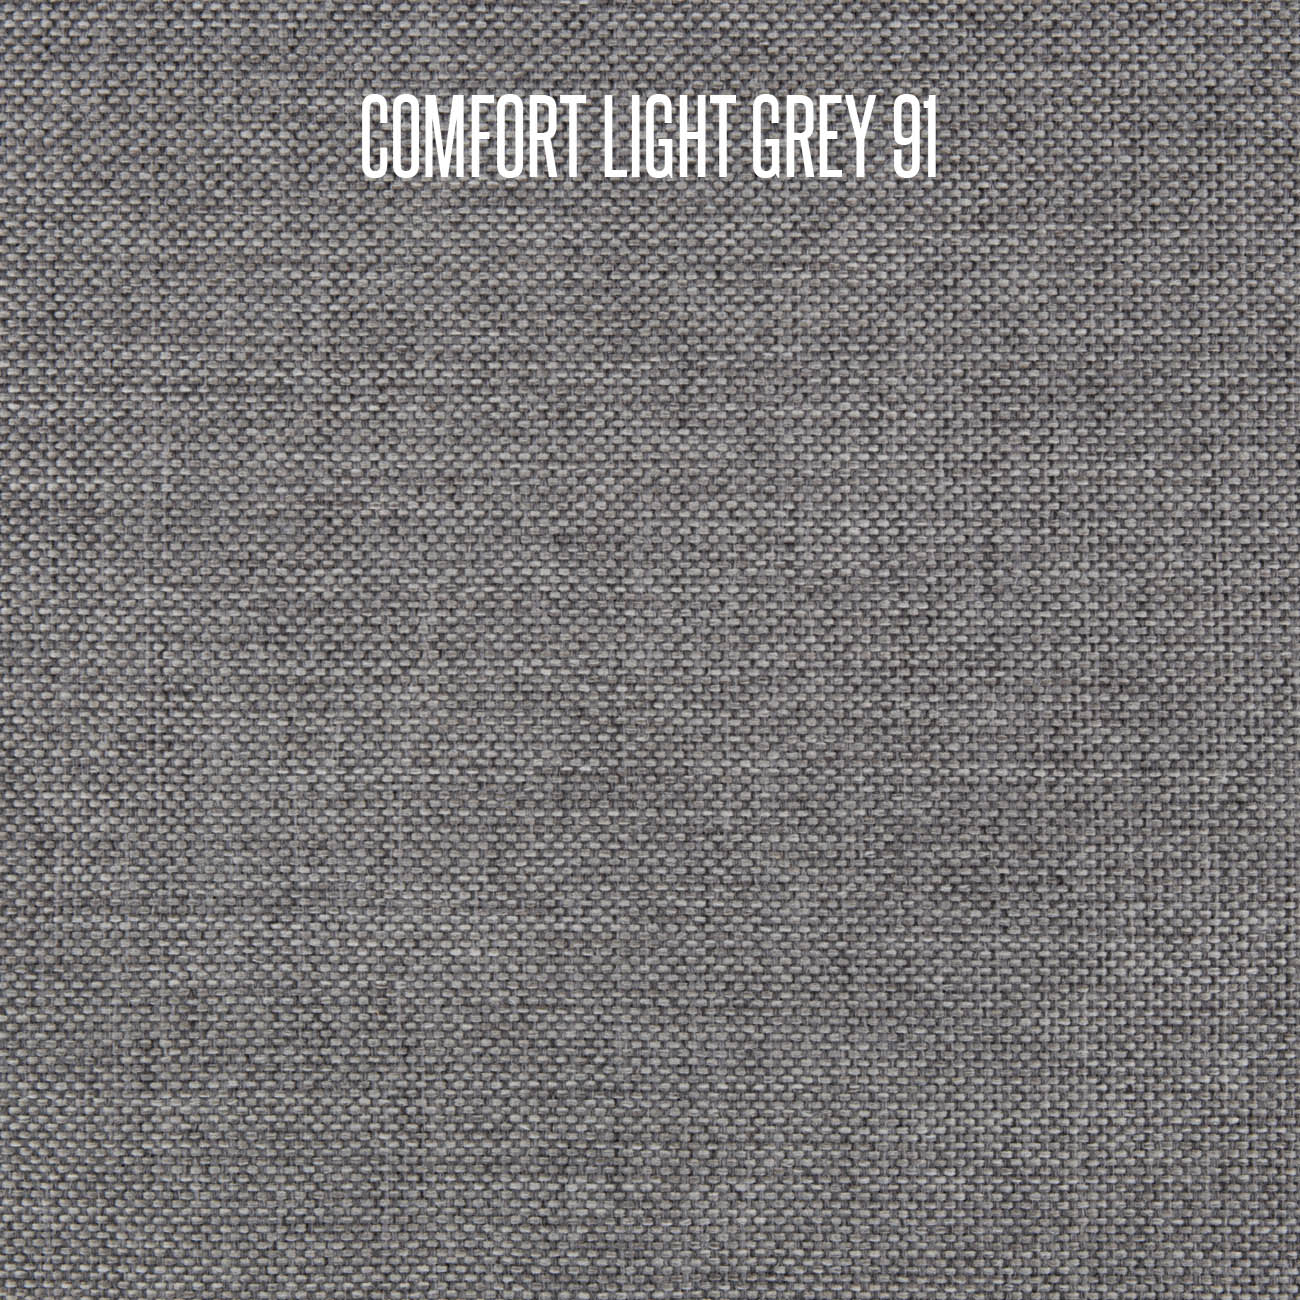 comfort-light-grey-91-swatch